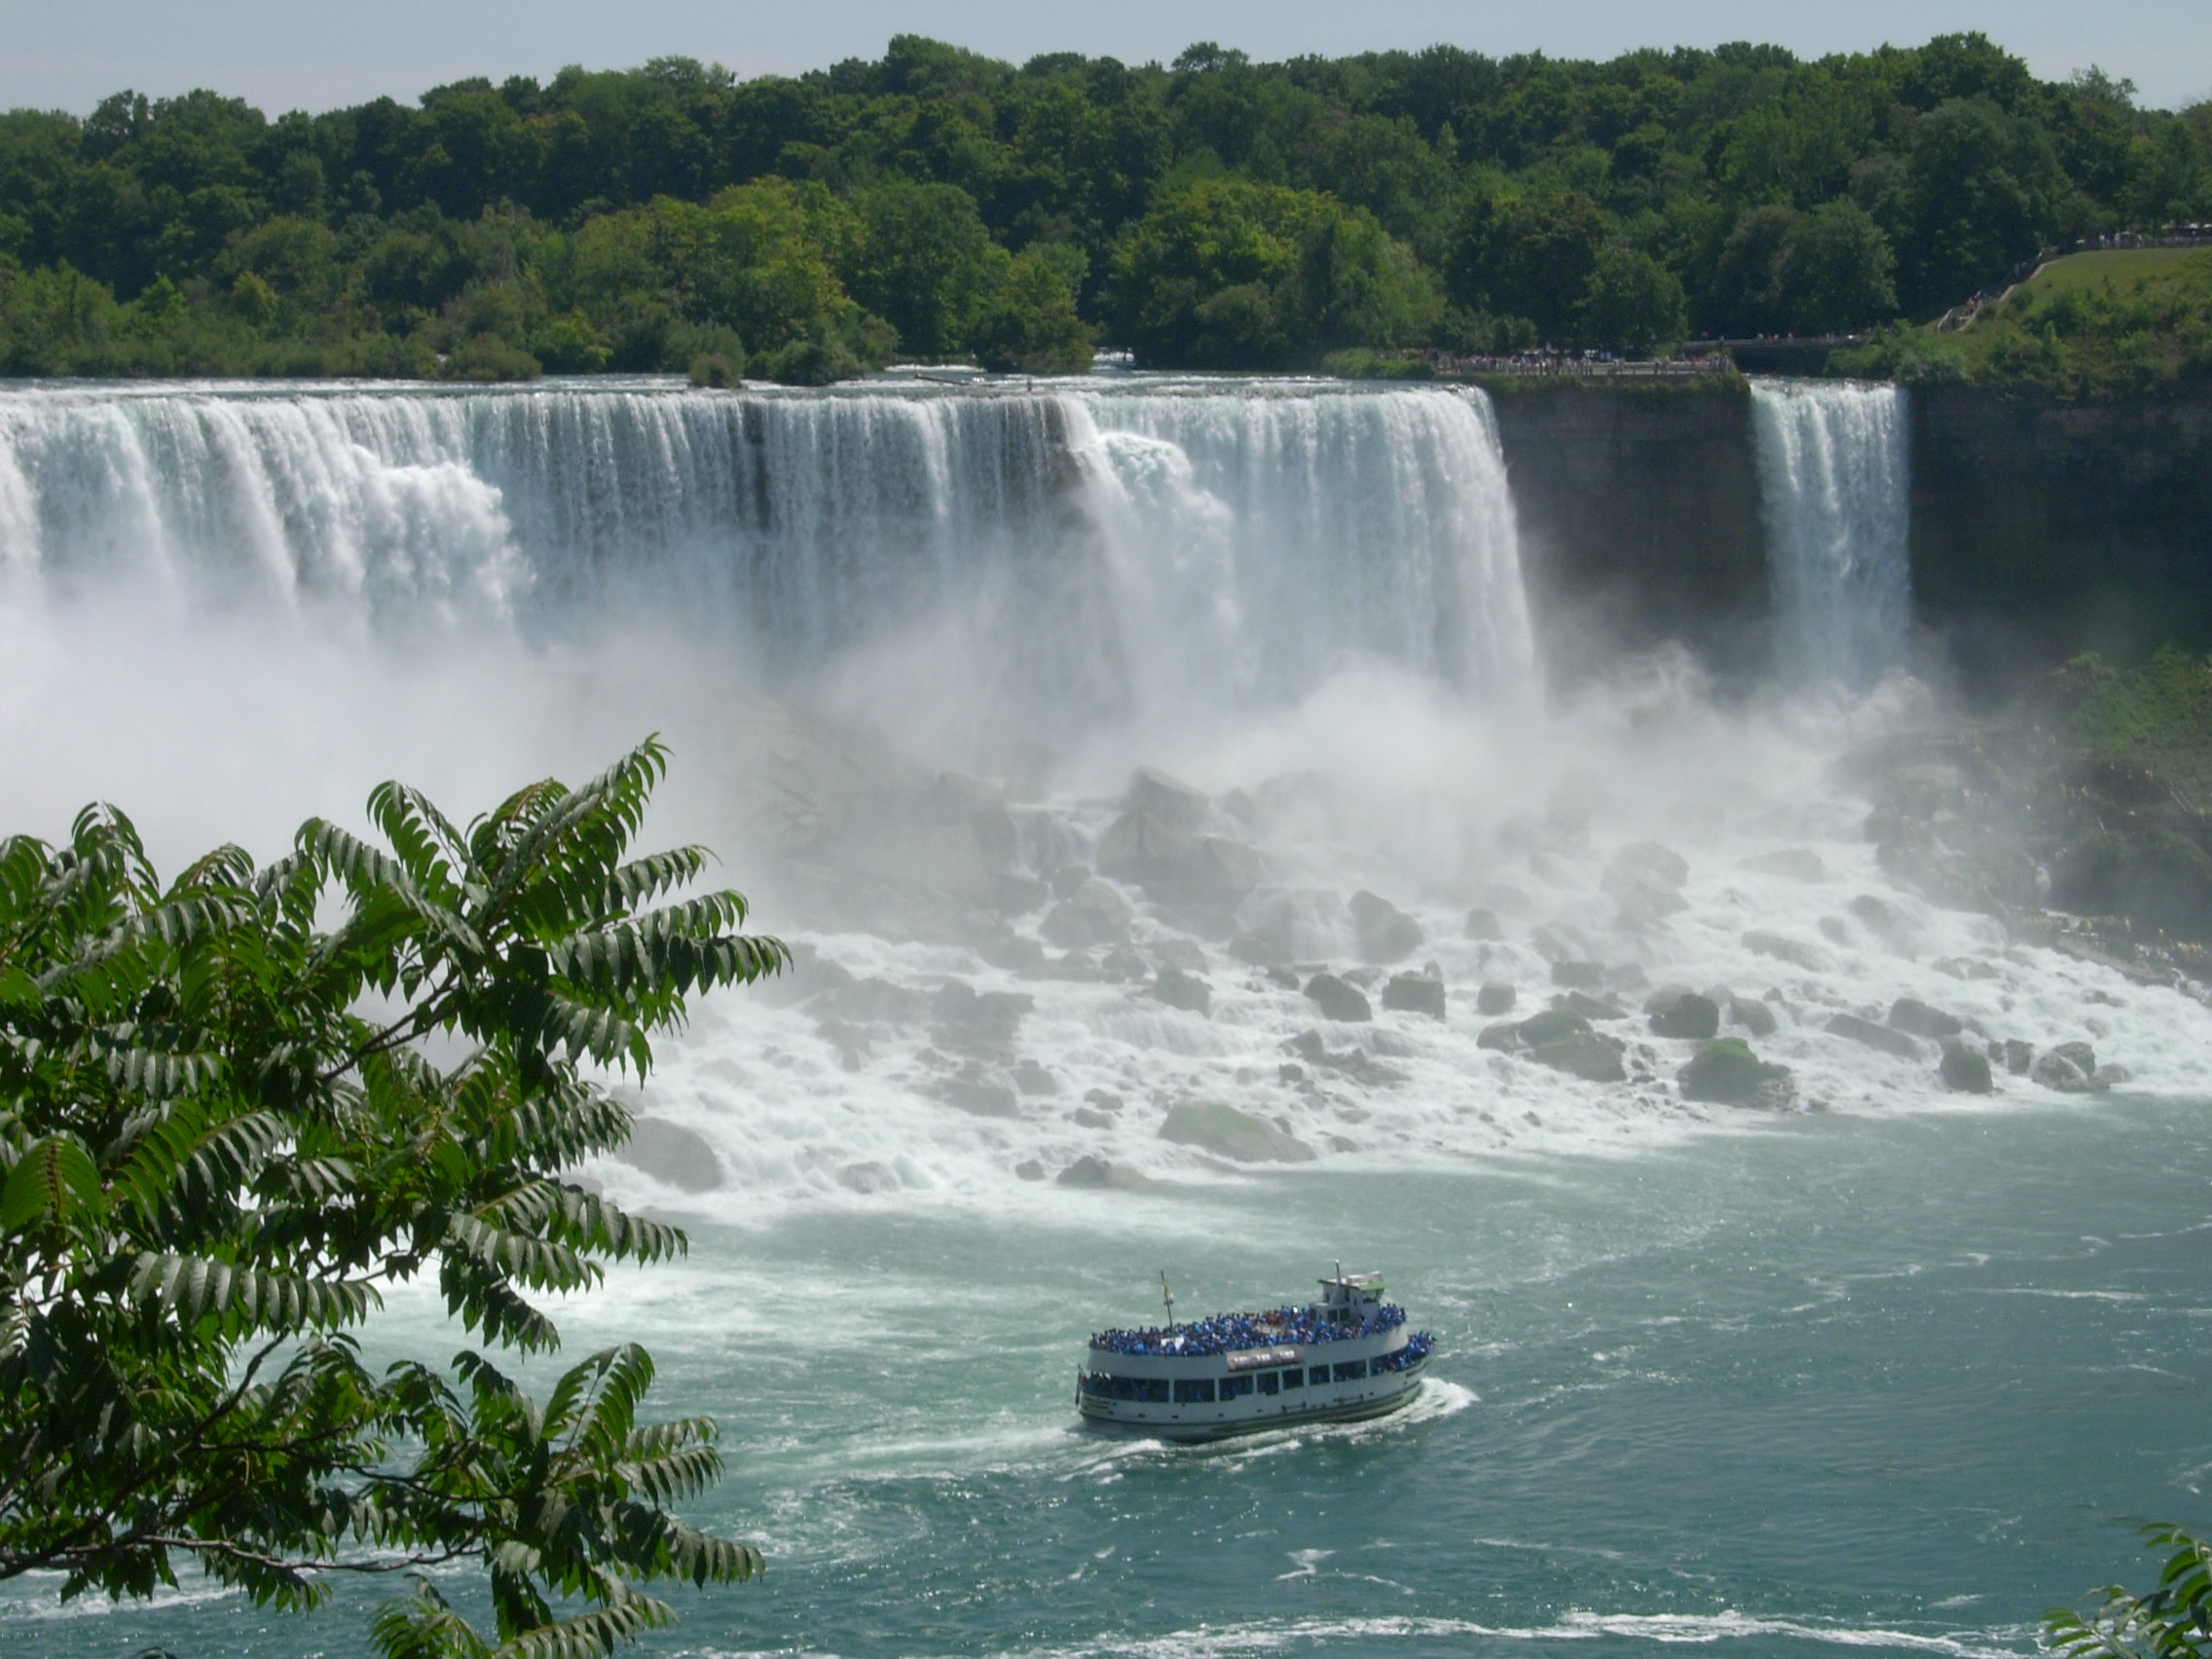 american falls dating A weekly public radio program and podcast each week we choose a theme and put together different kinds of stories on that theme.